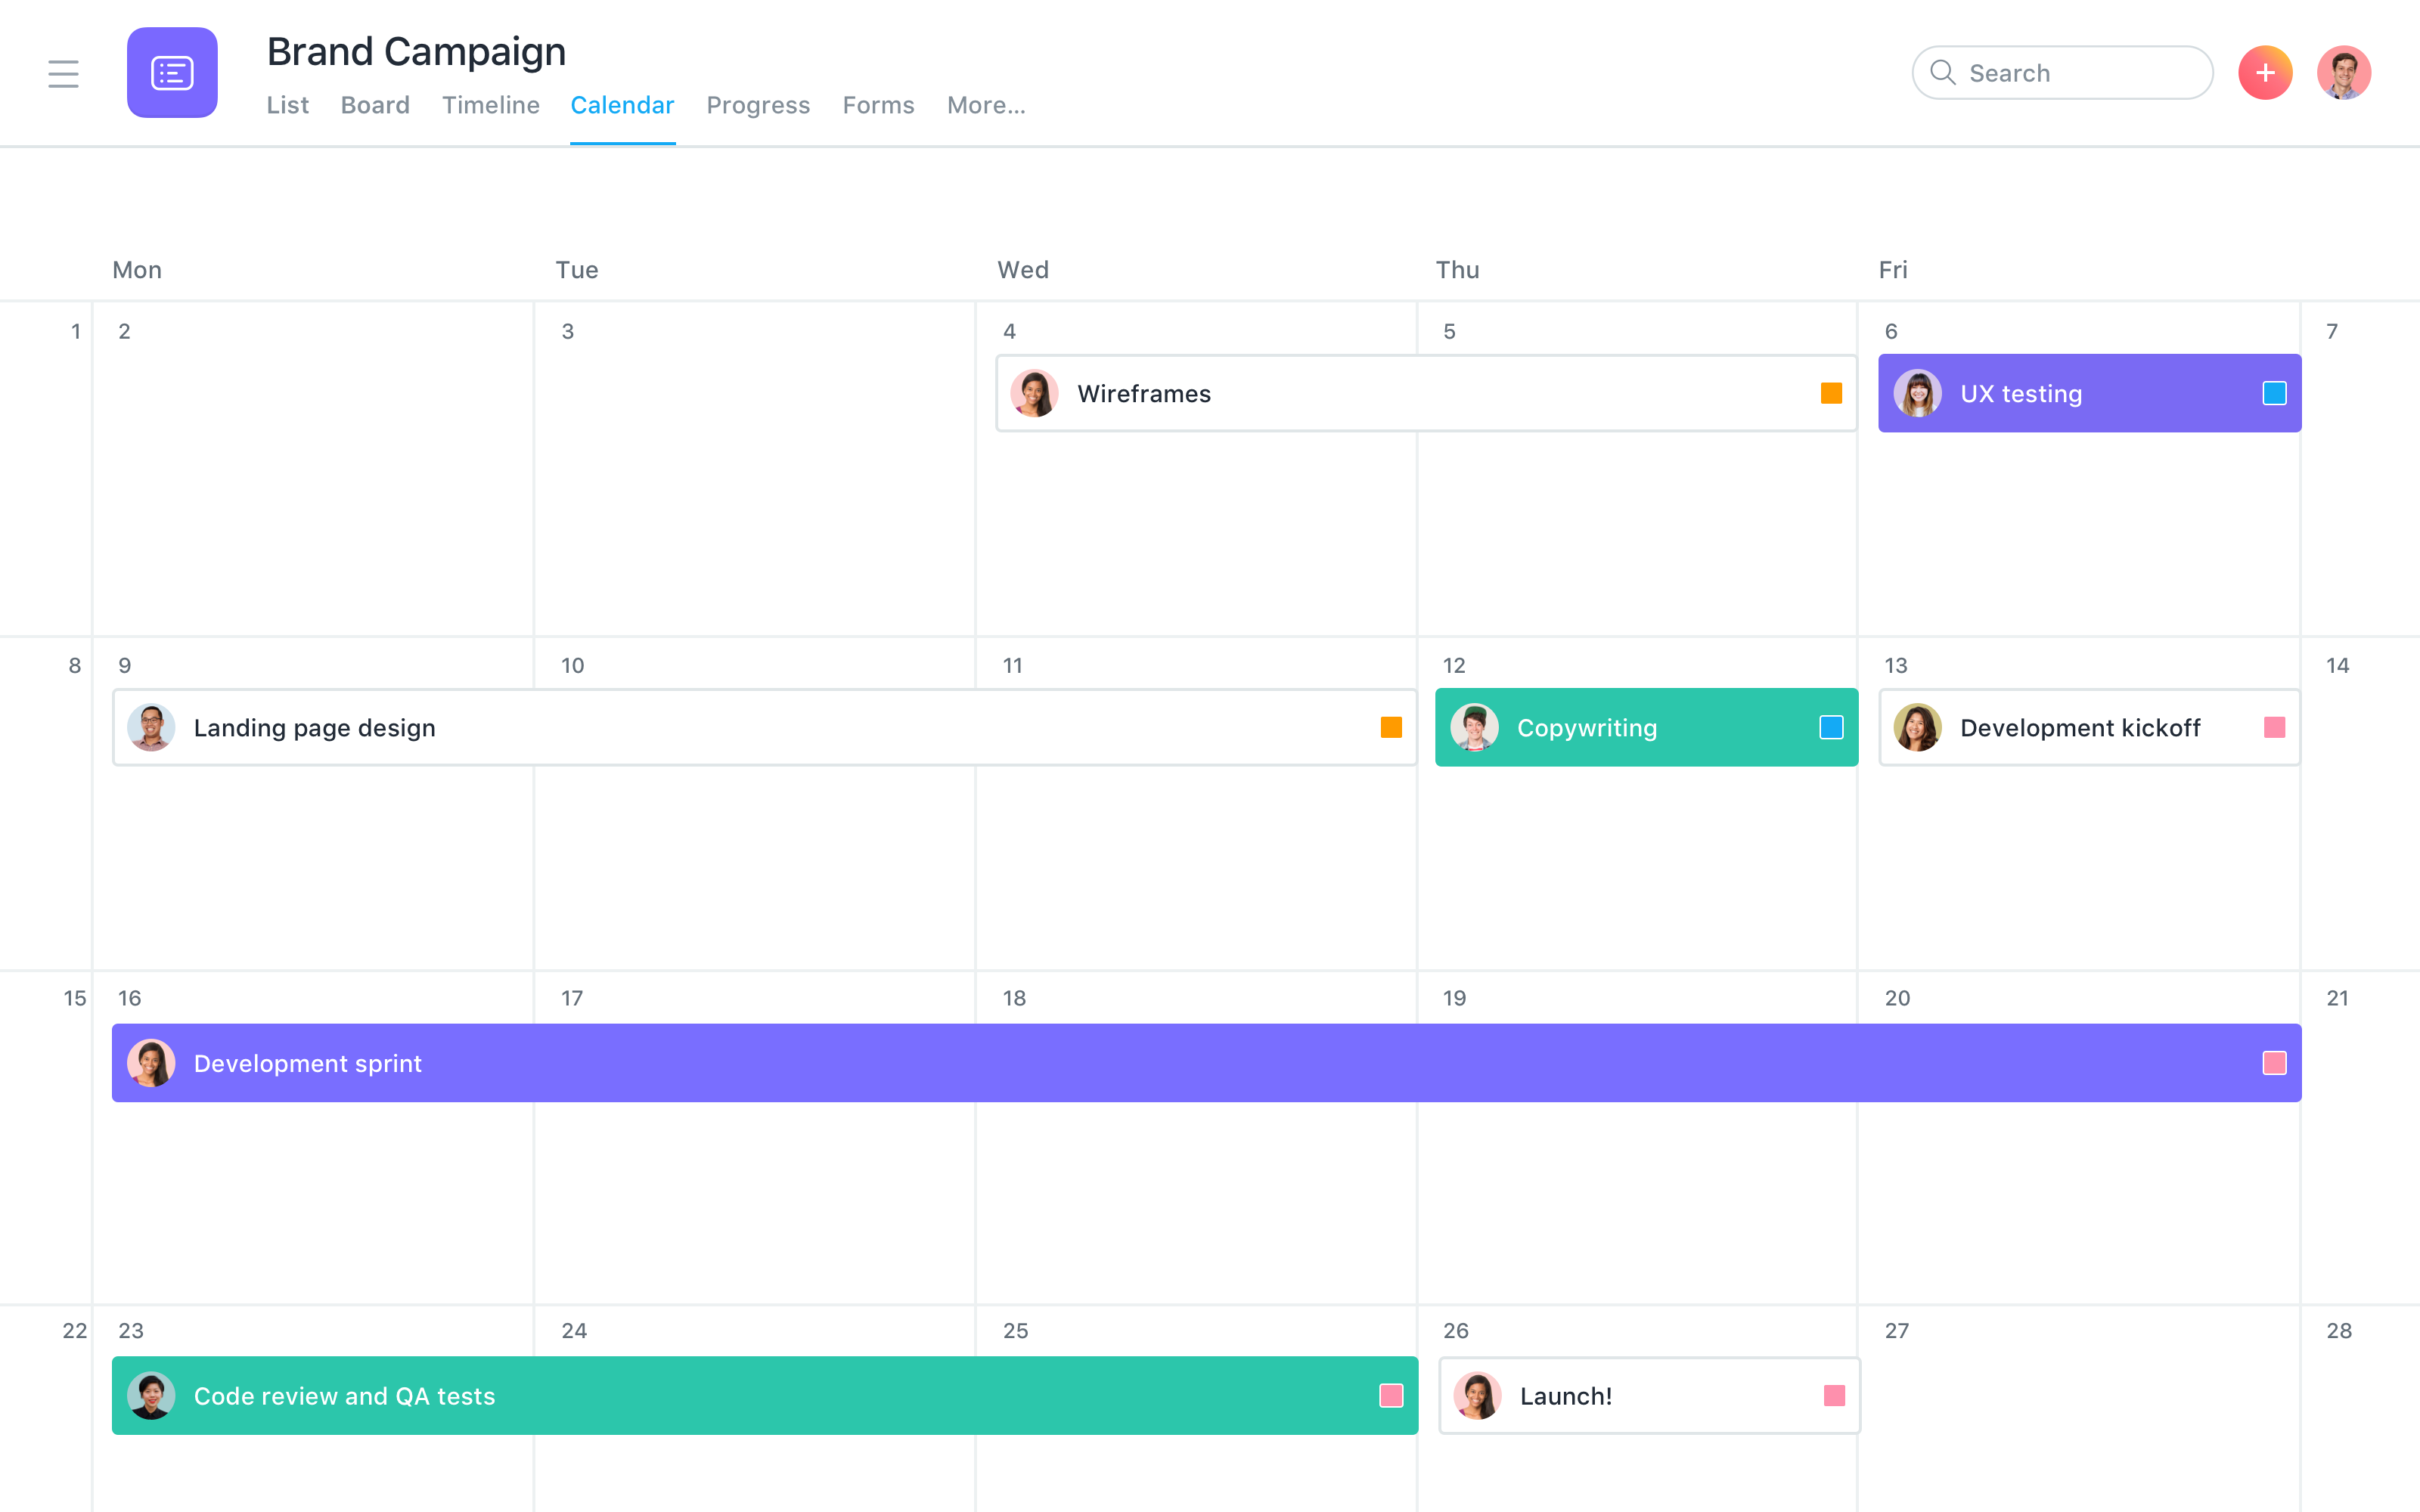 See any list of tasks on a calendar to get a clear view of when work is due. See all of each team's work in one calendar to know exactly who's doing what by when.